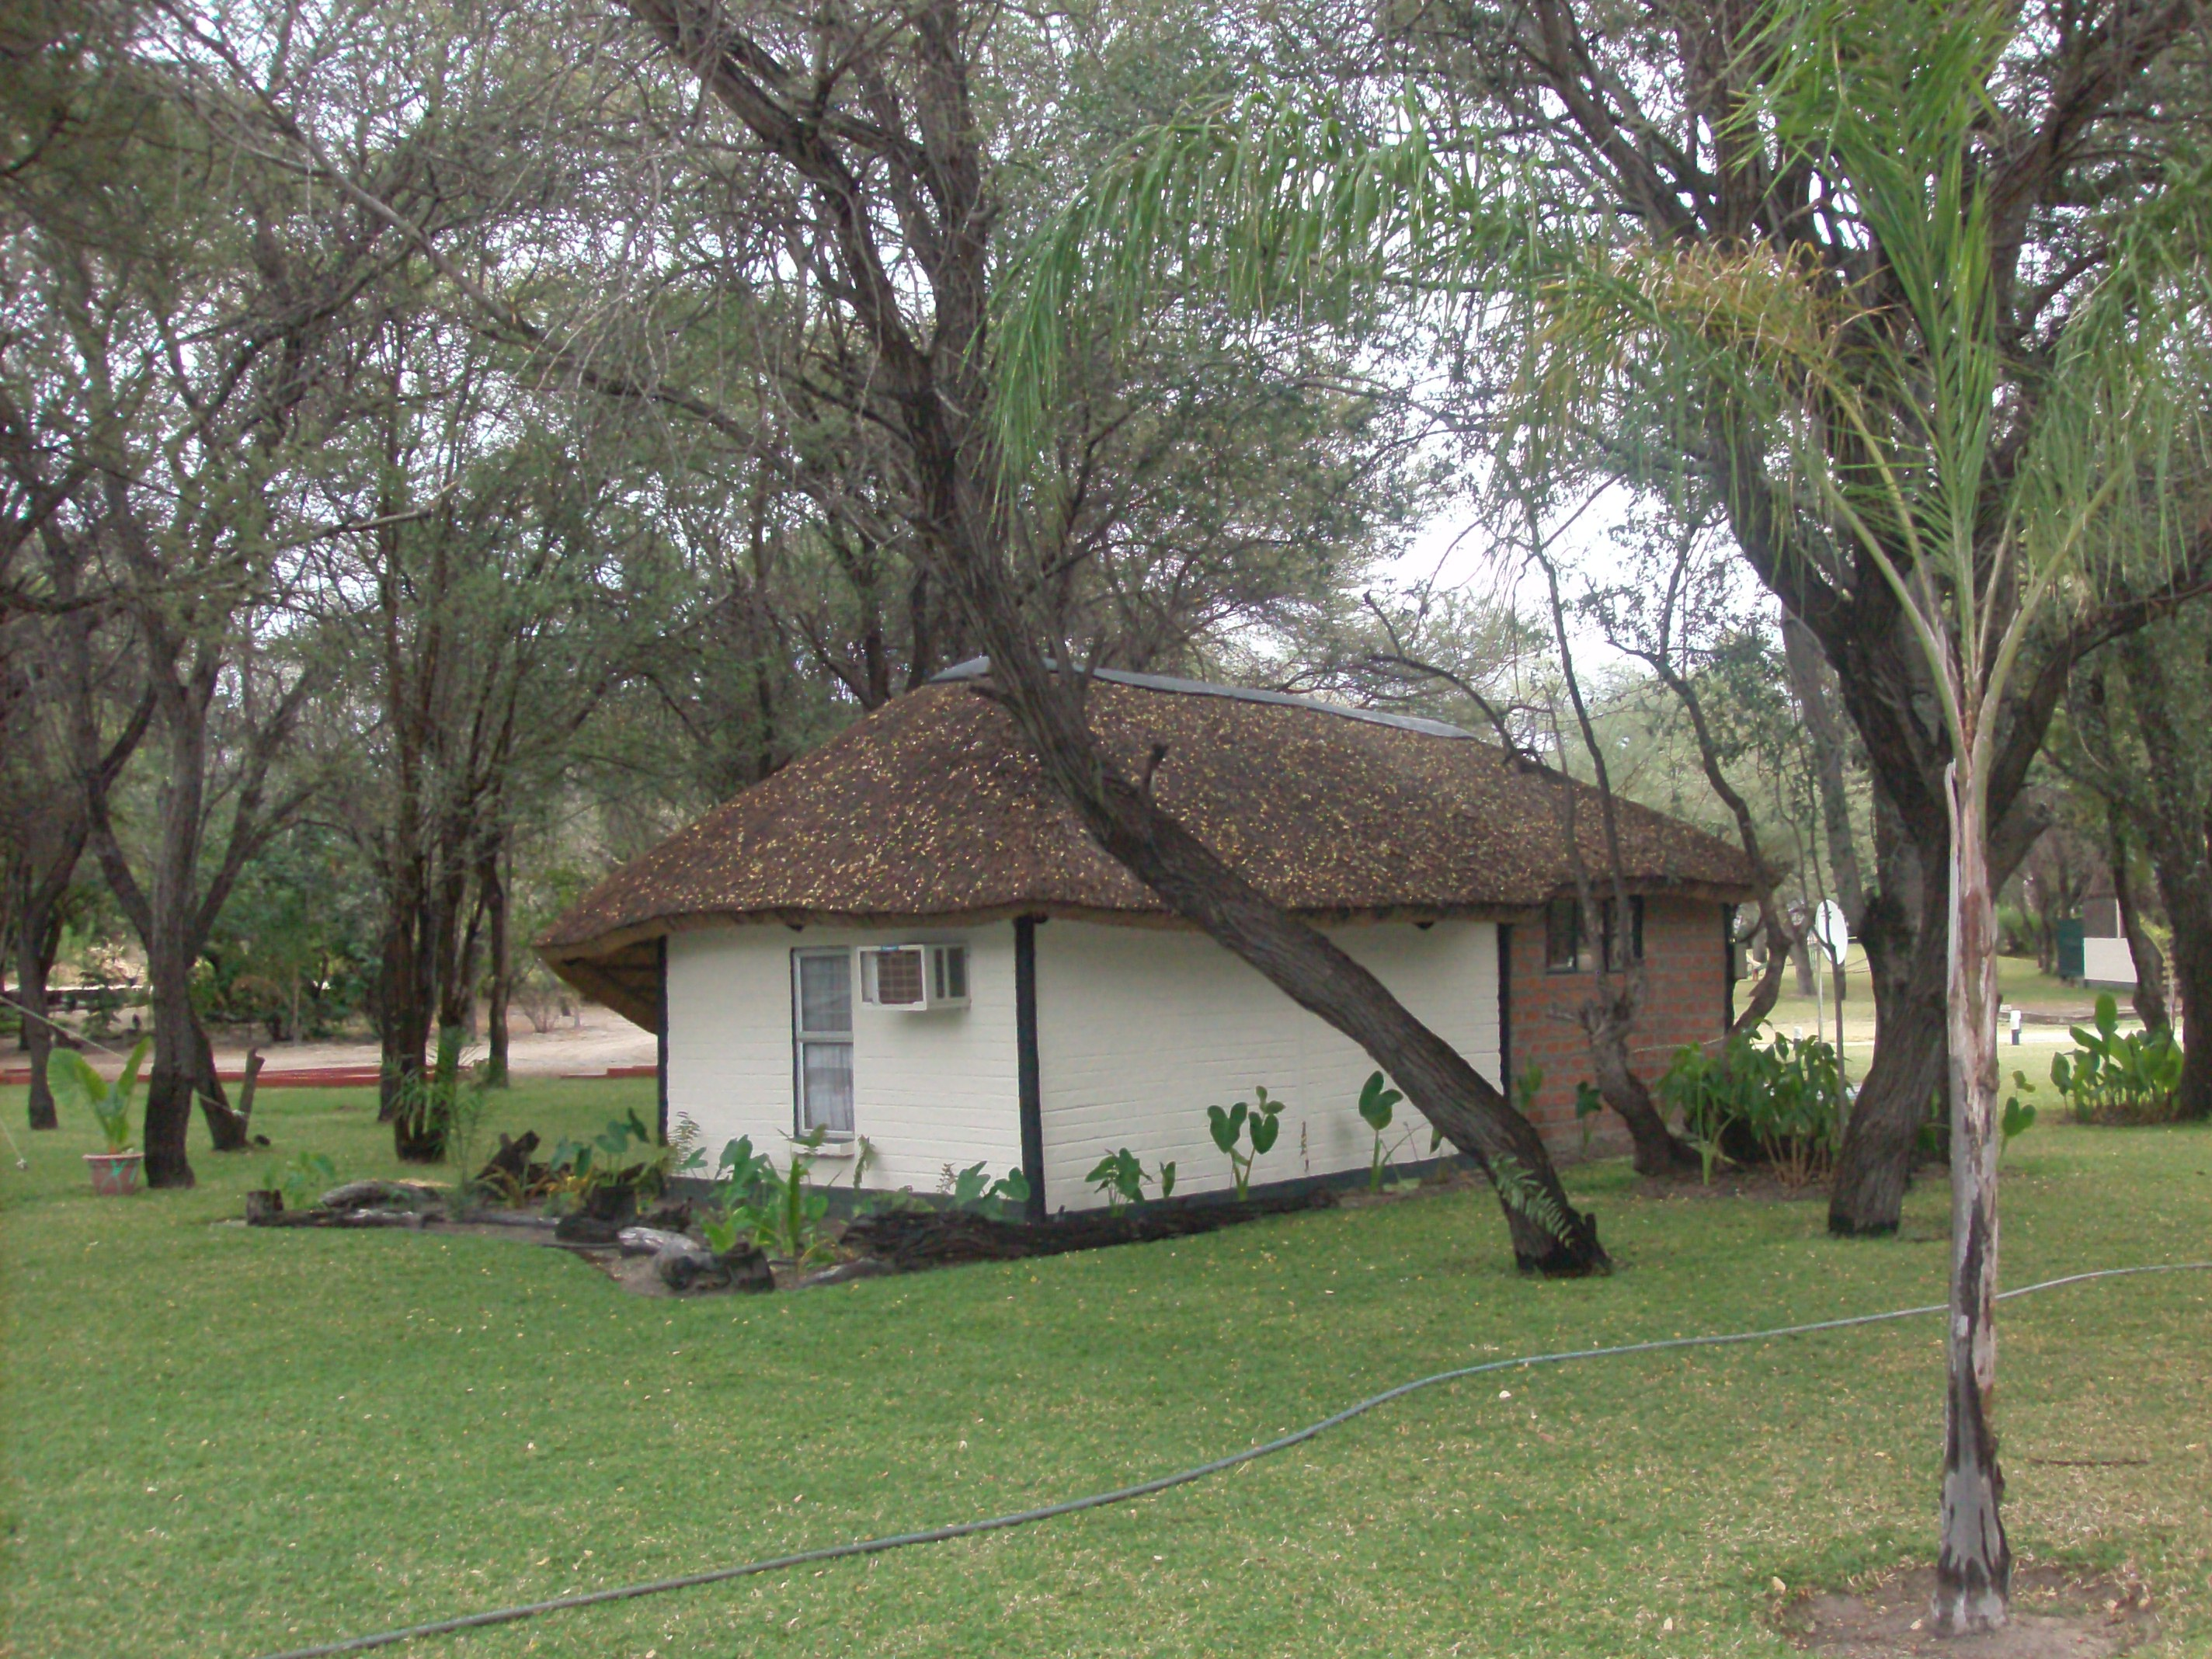 Sarasungu River Lodge